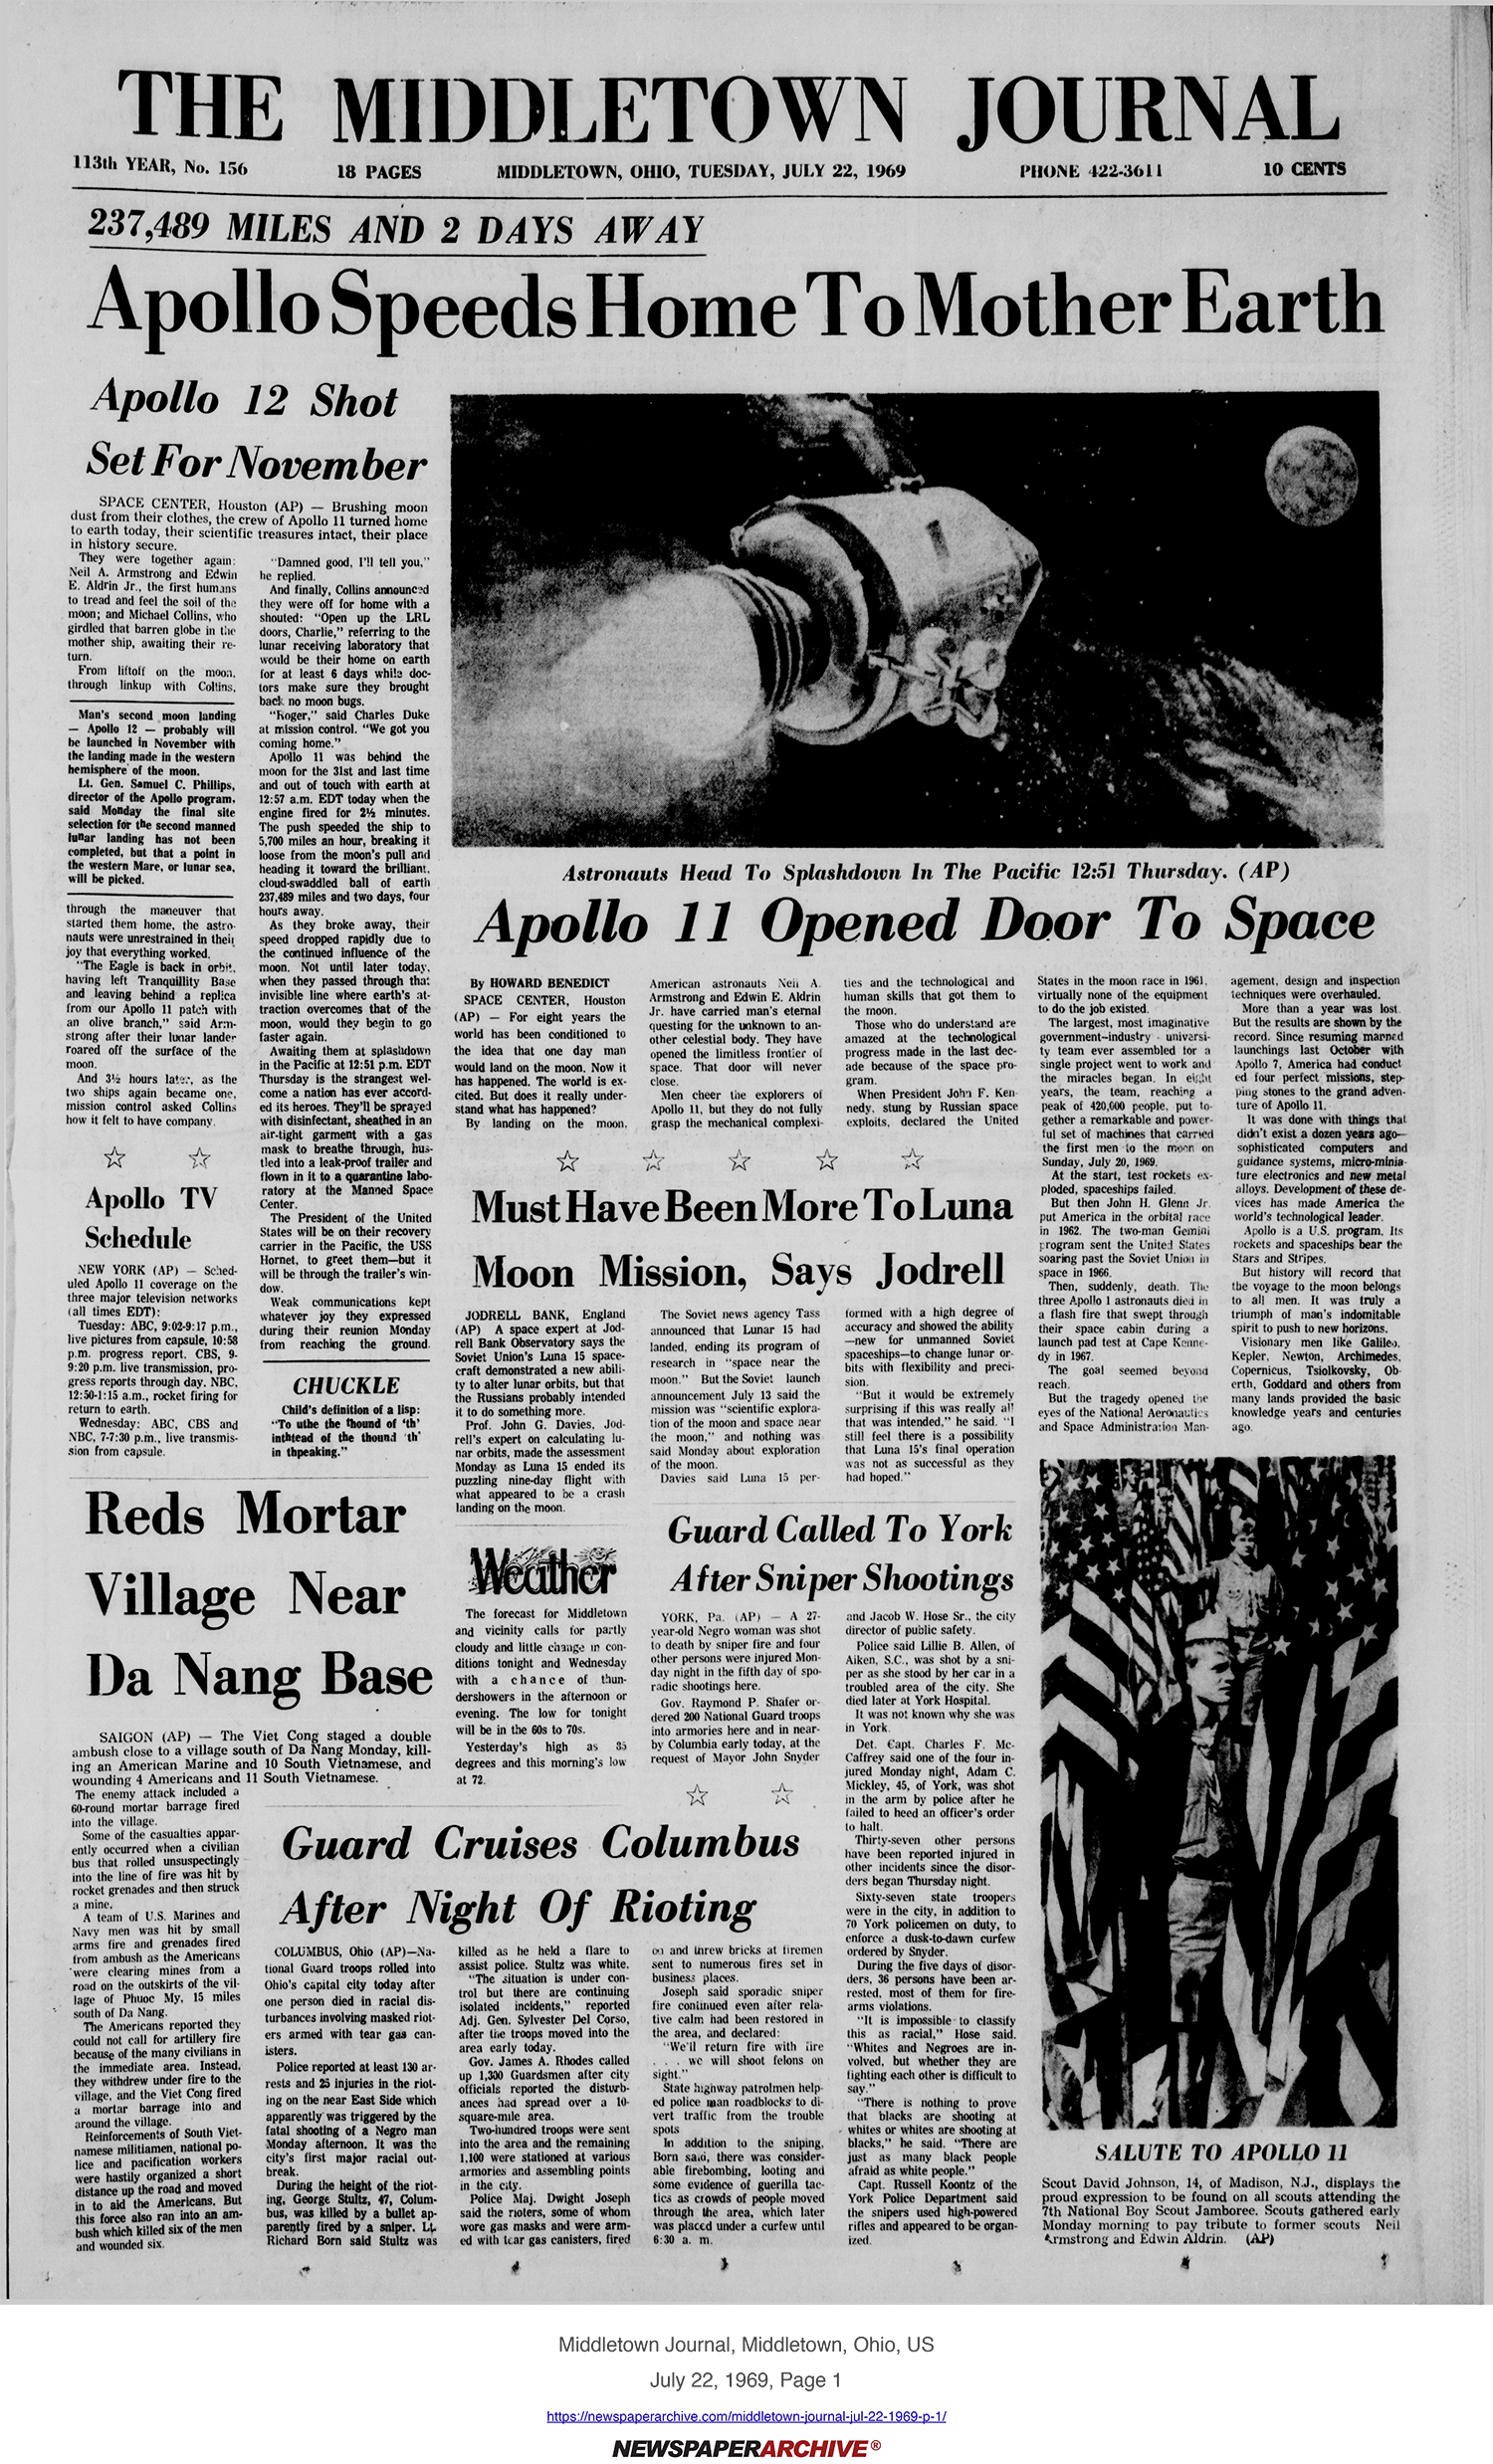 middletown-journal-Jul-22-1969-p-1 (1).jpg